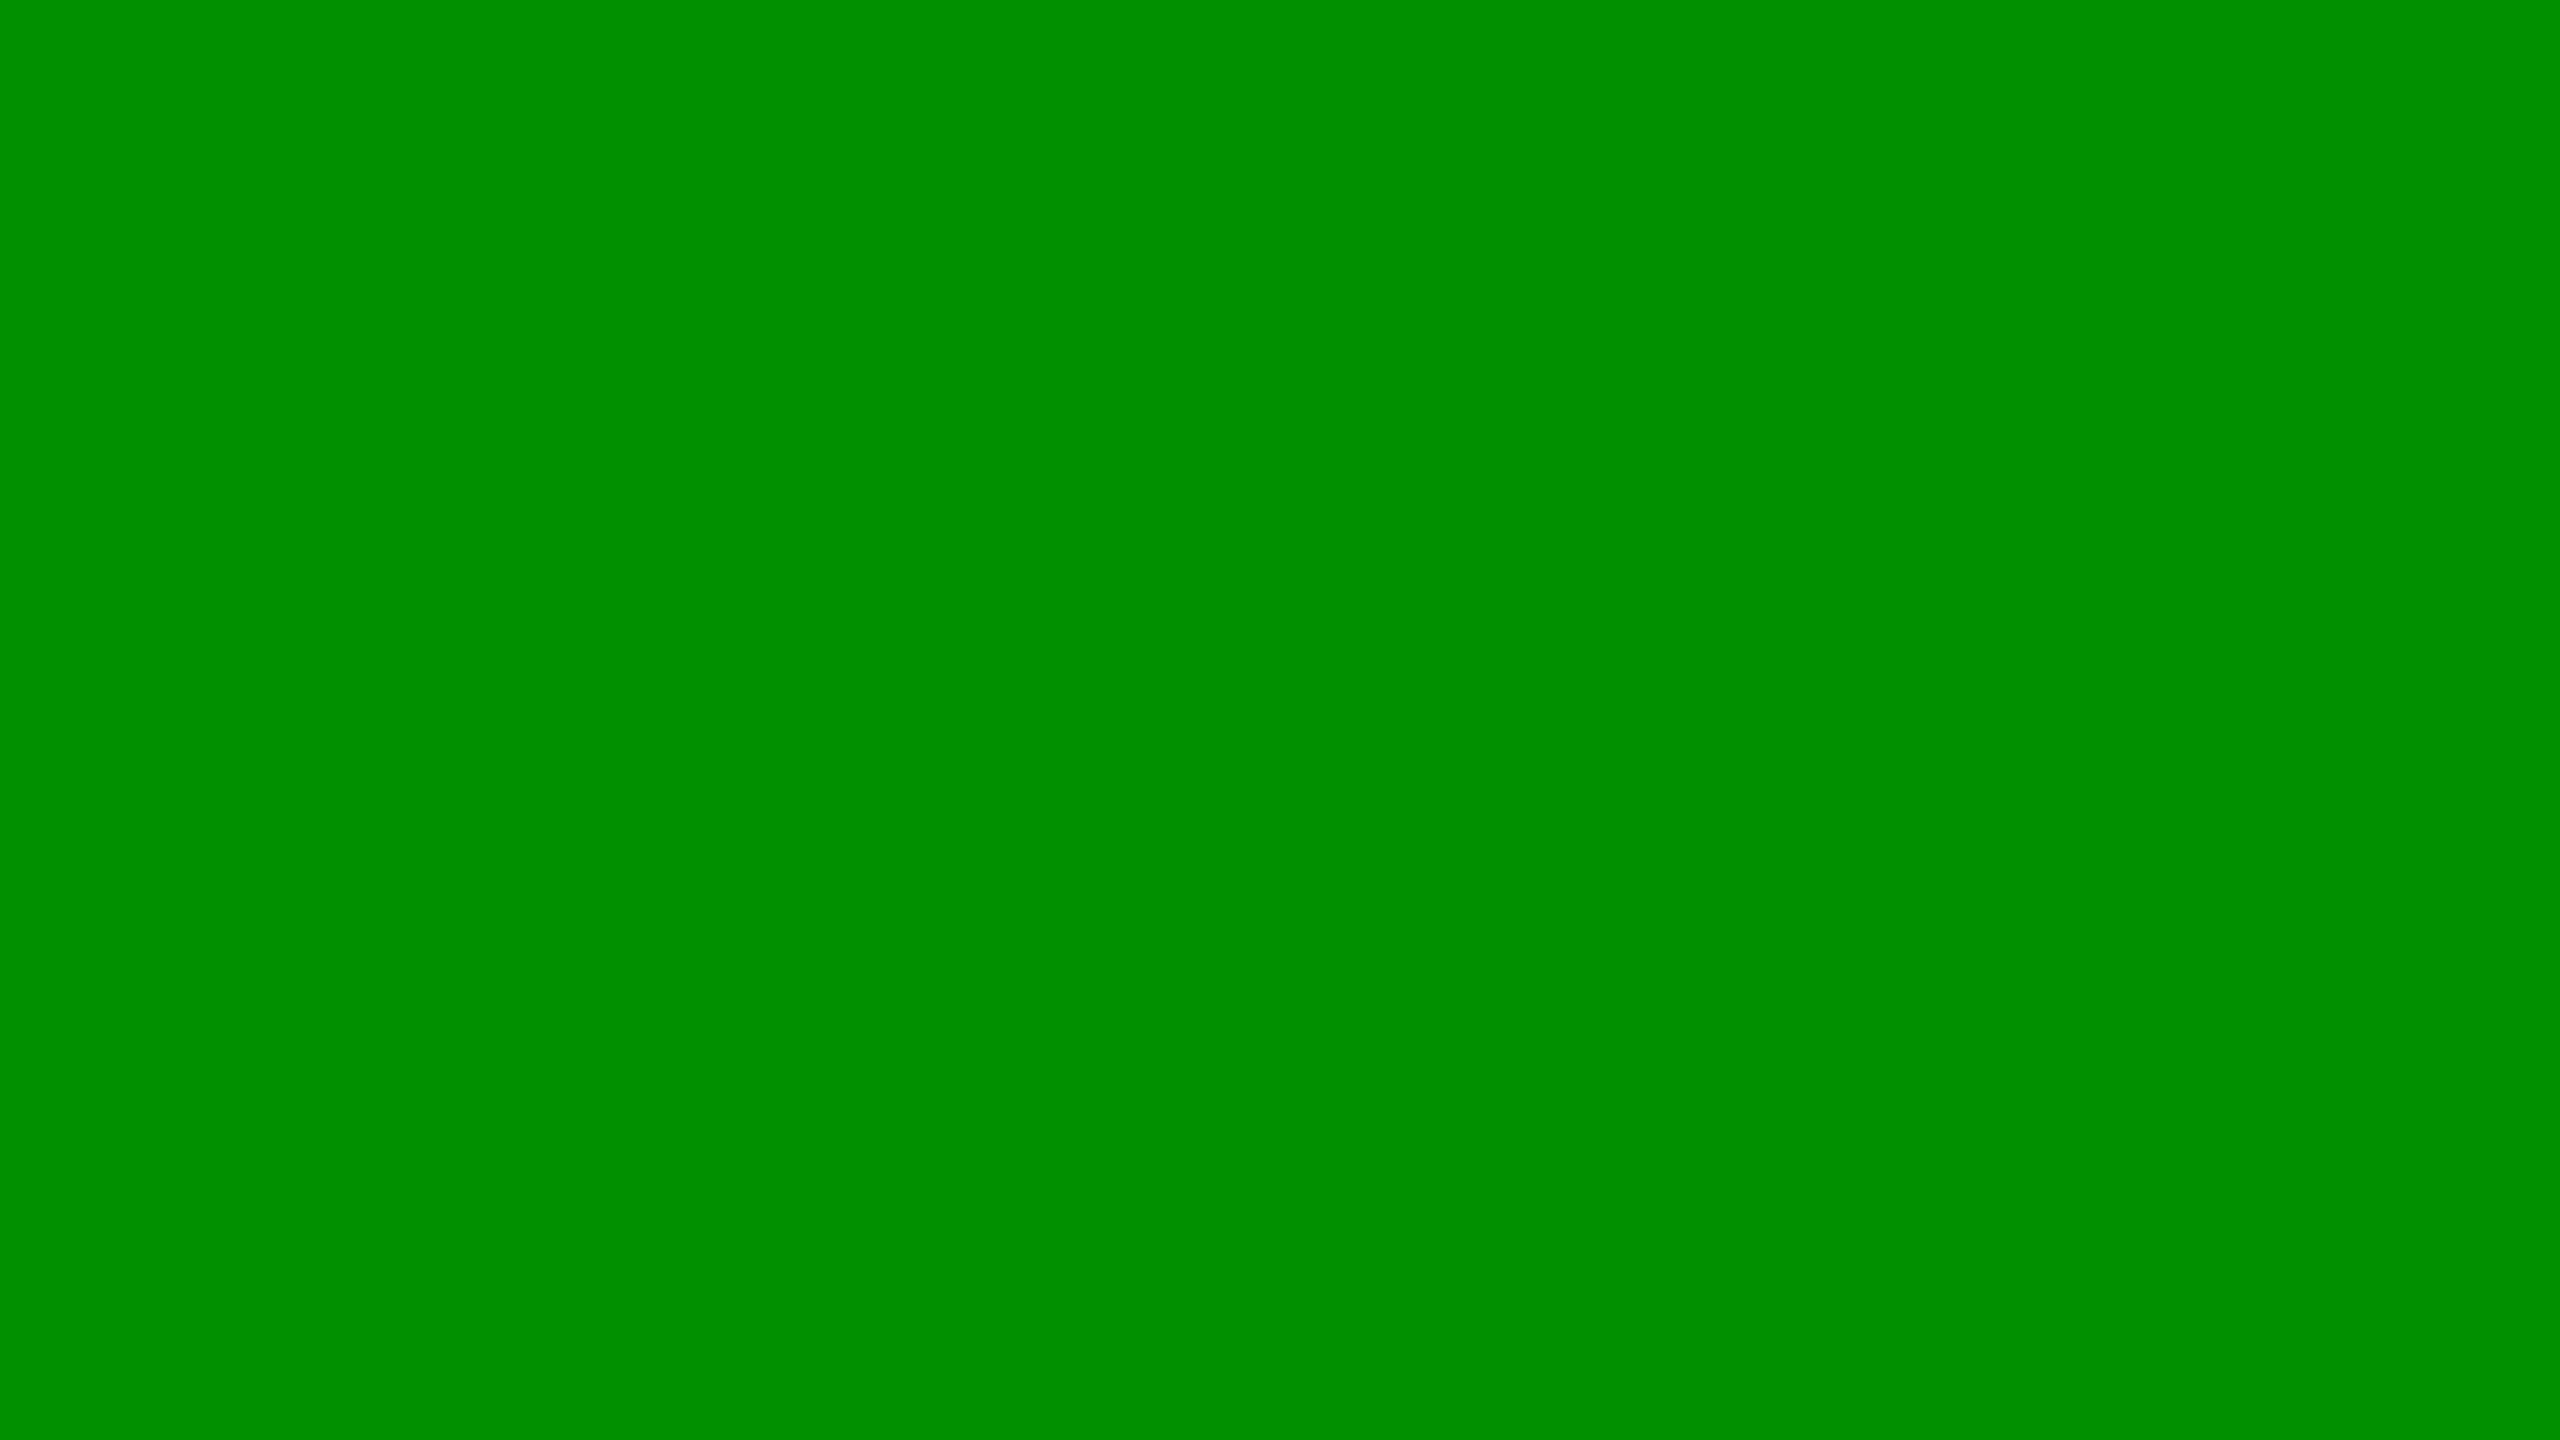 2560x1440 - Solid Green 12